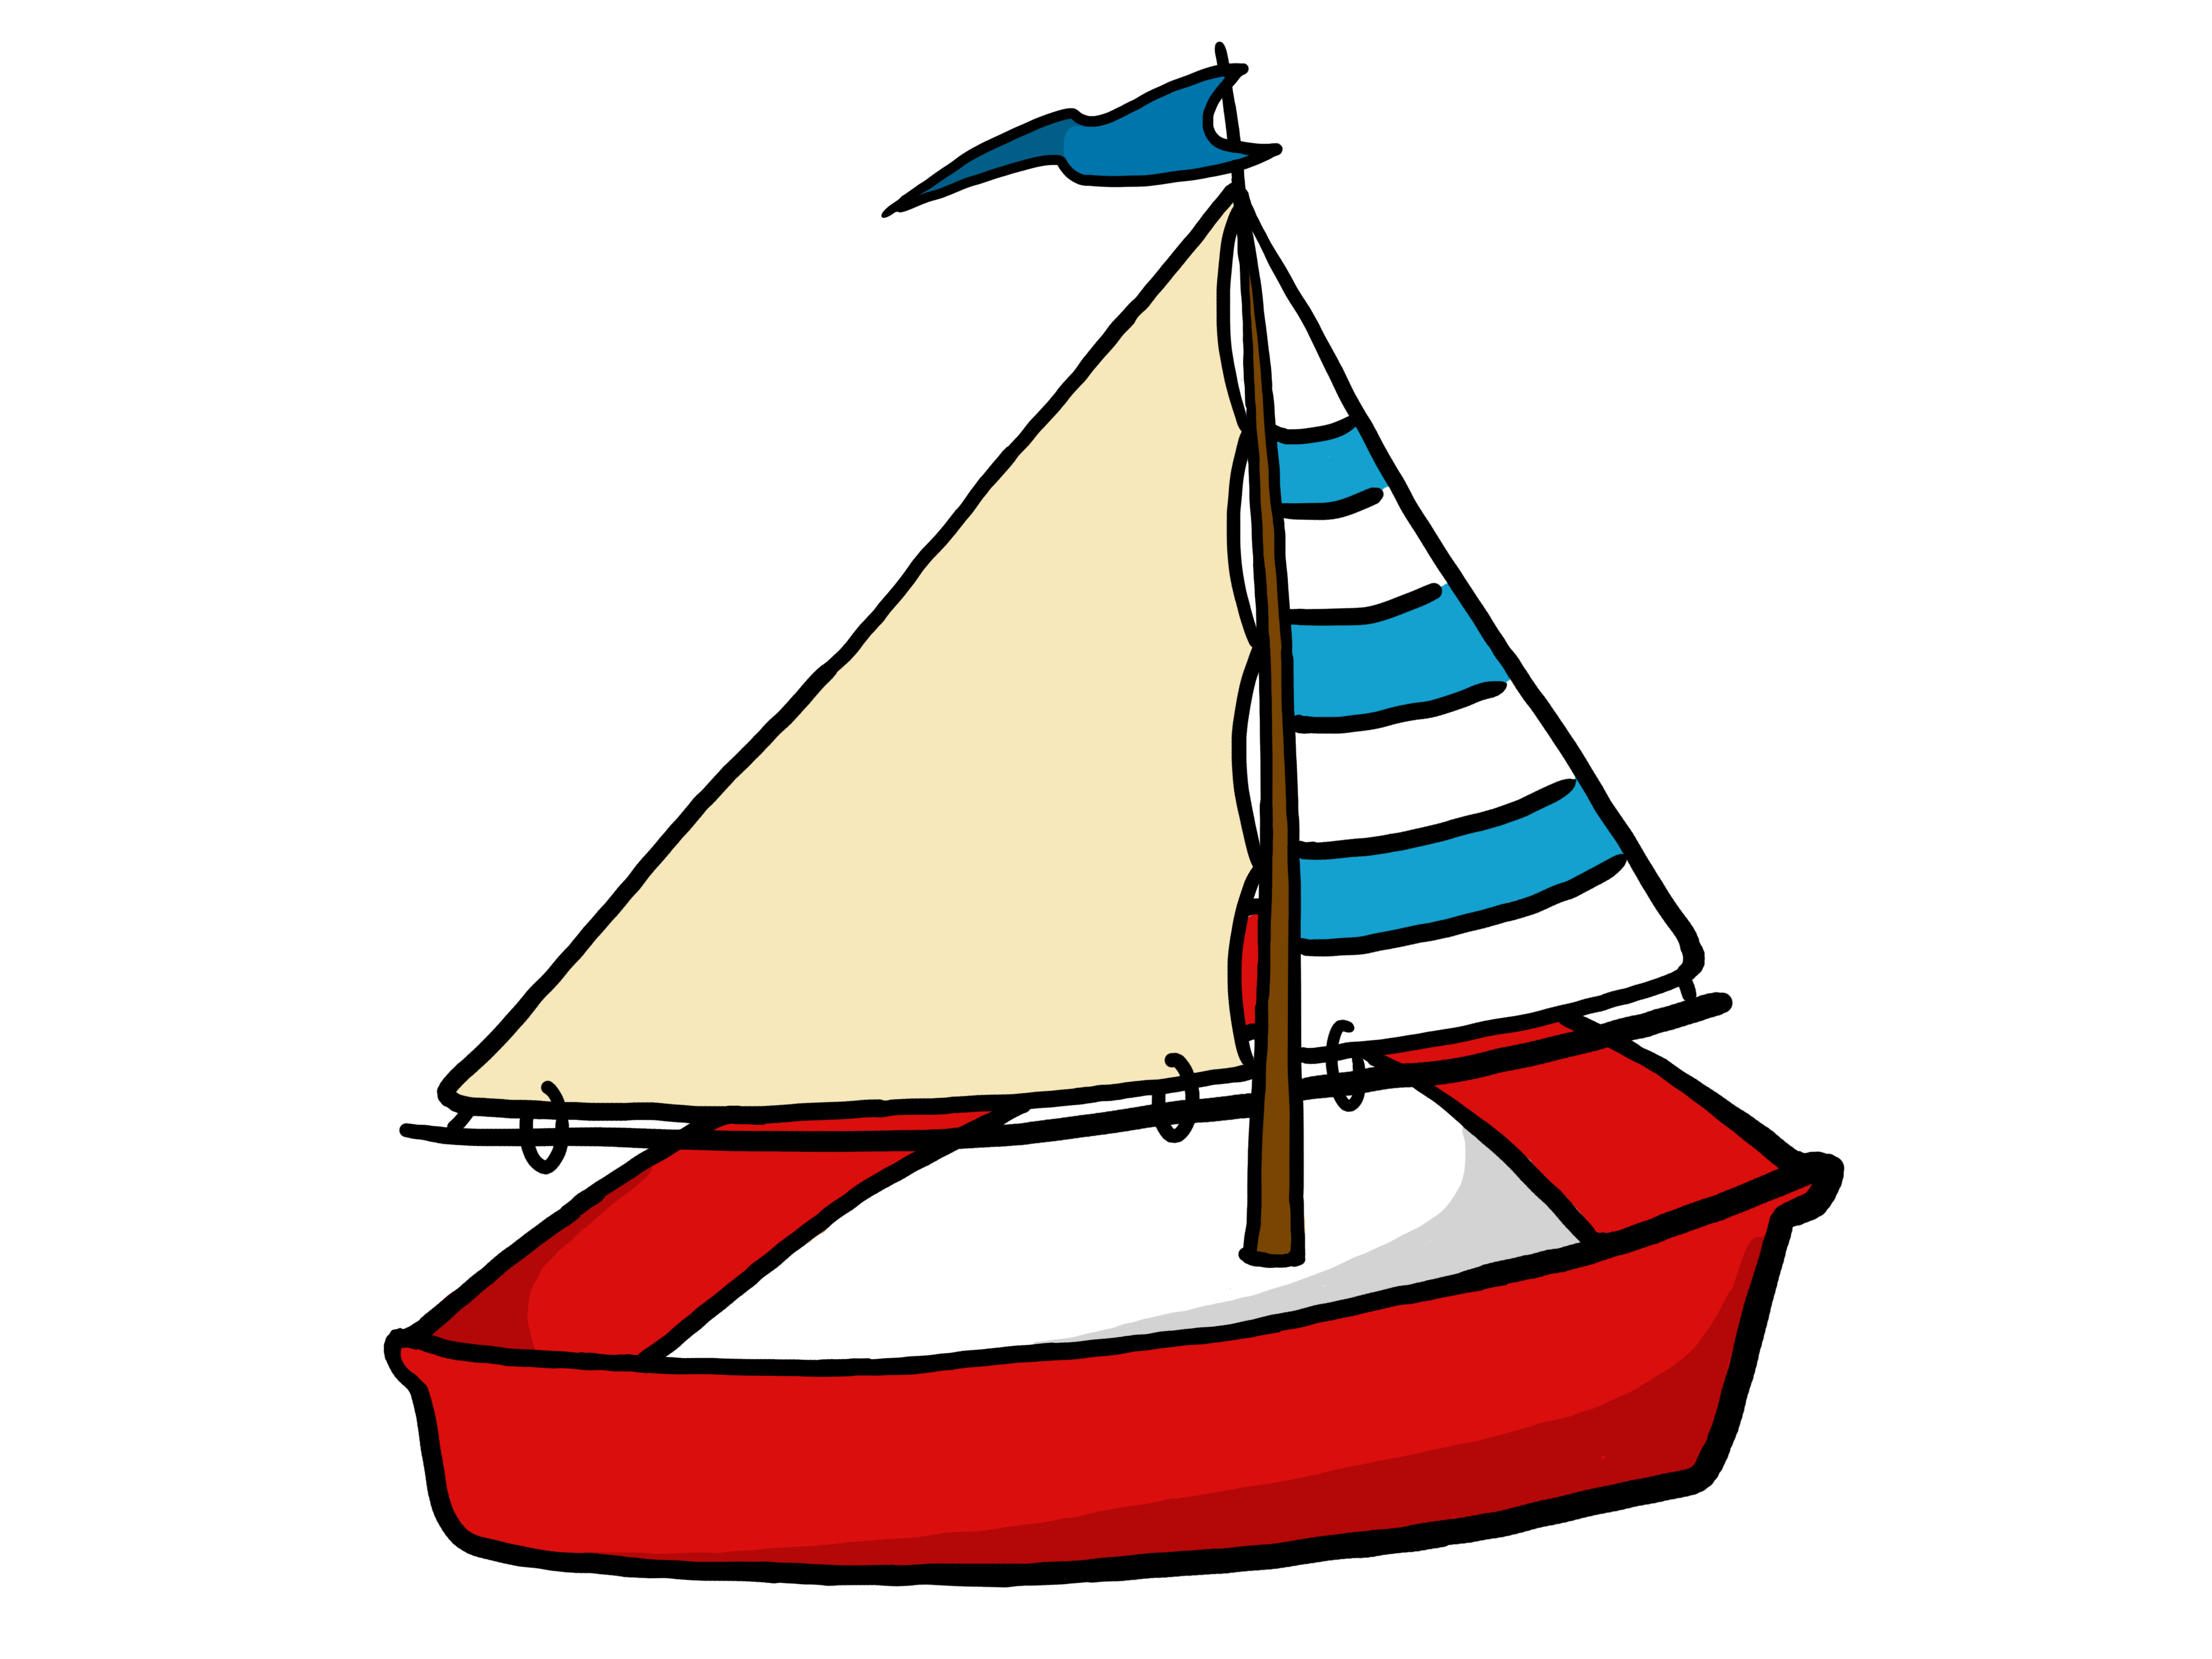 Boating Clipart Free Clipart Images-Boating clipart free clipart images-10